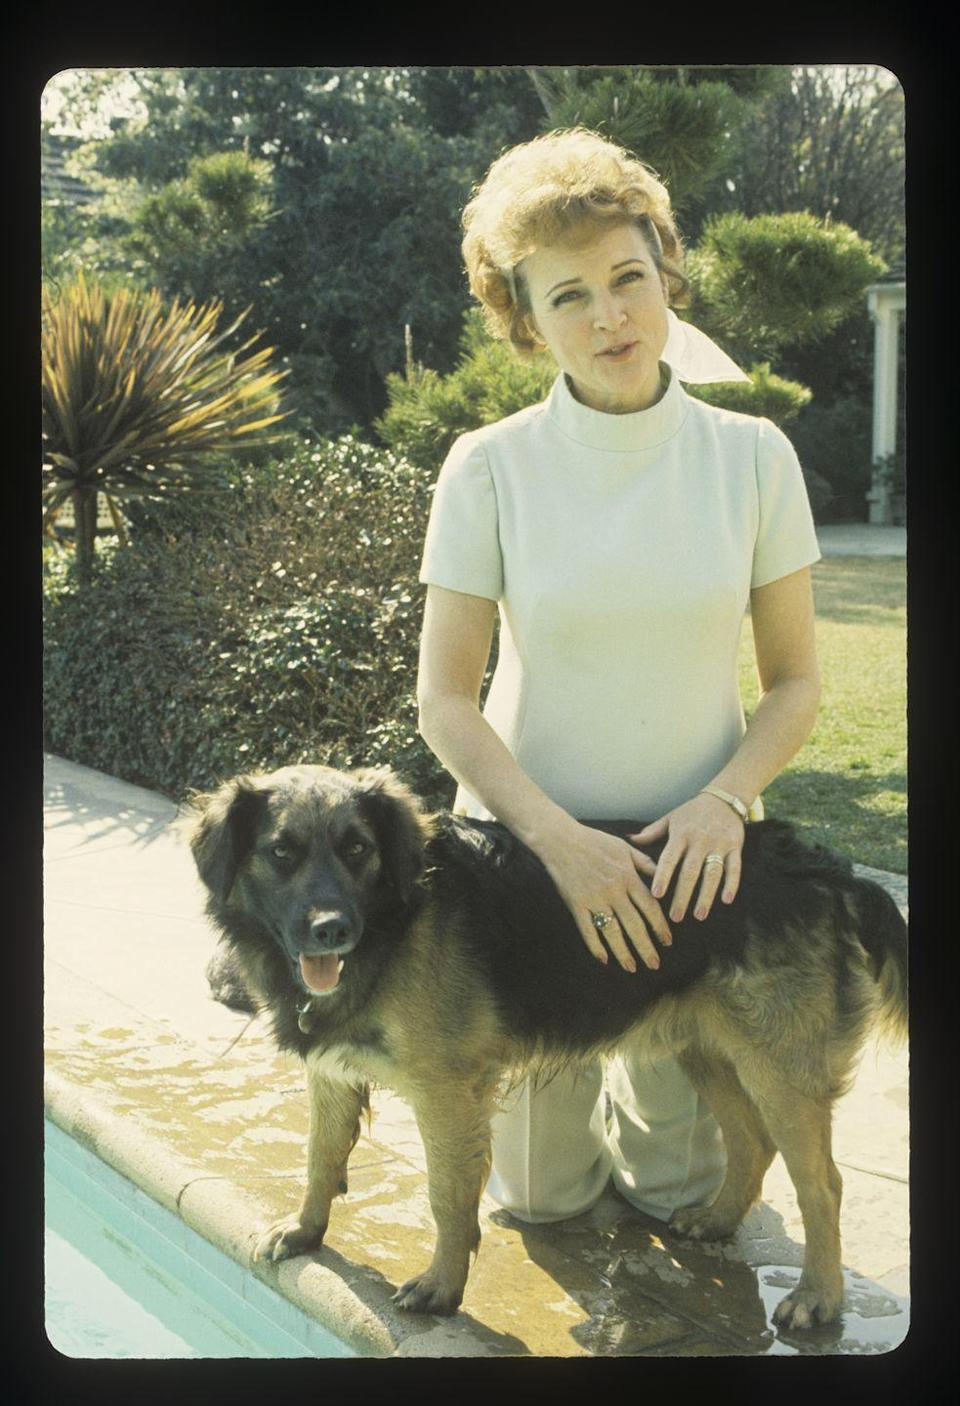 """<p>In 1971, Betty starred in a television series called <em>The Pet Set</em>. The series was produced by her husband, Allen Ludden, and featured the actress <a href=""""https://www.insider.com/betty-white-facts-career-2019-1#betty-hosted-a-show-called-the-pet-set-in-1971-featuring-celebrities-and-their-pets-12"""" rel=""""nofollow noopener"""" target=""""_blank"""" data-ylk=""""slk:interviewing various celebrities and their pets"""" class=""""link rapid-noclick-resp"""">interviewing various celebrities and their pets</a>. </p>"""